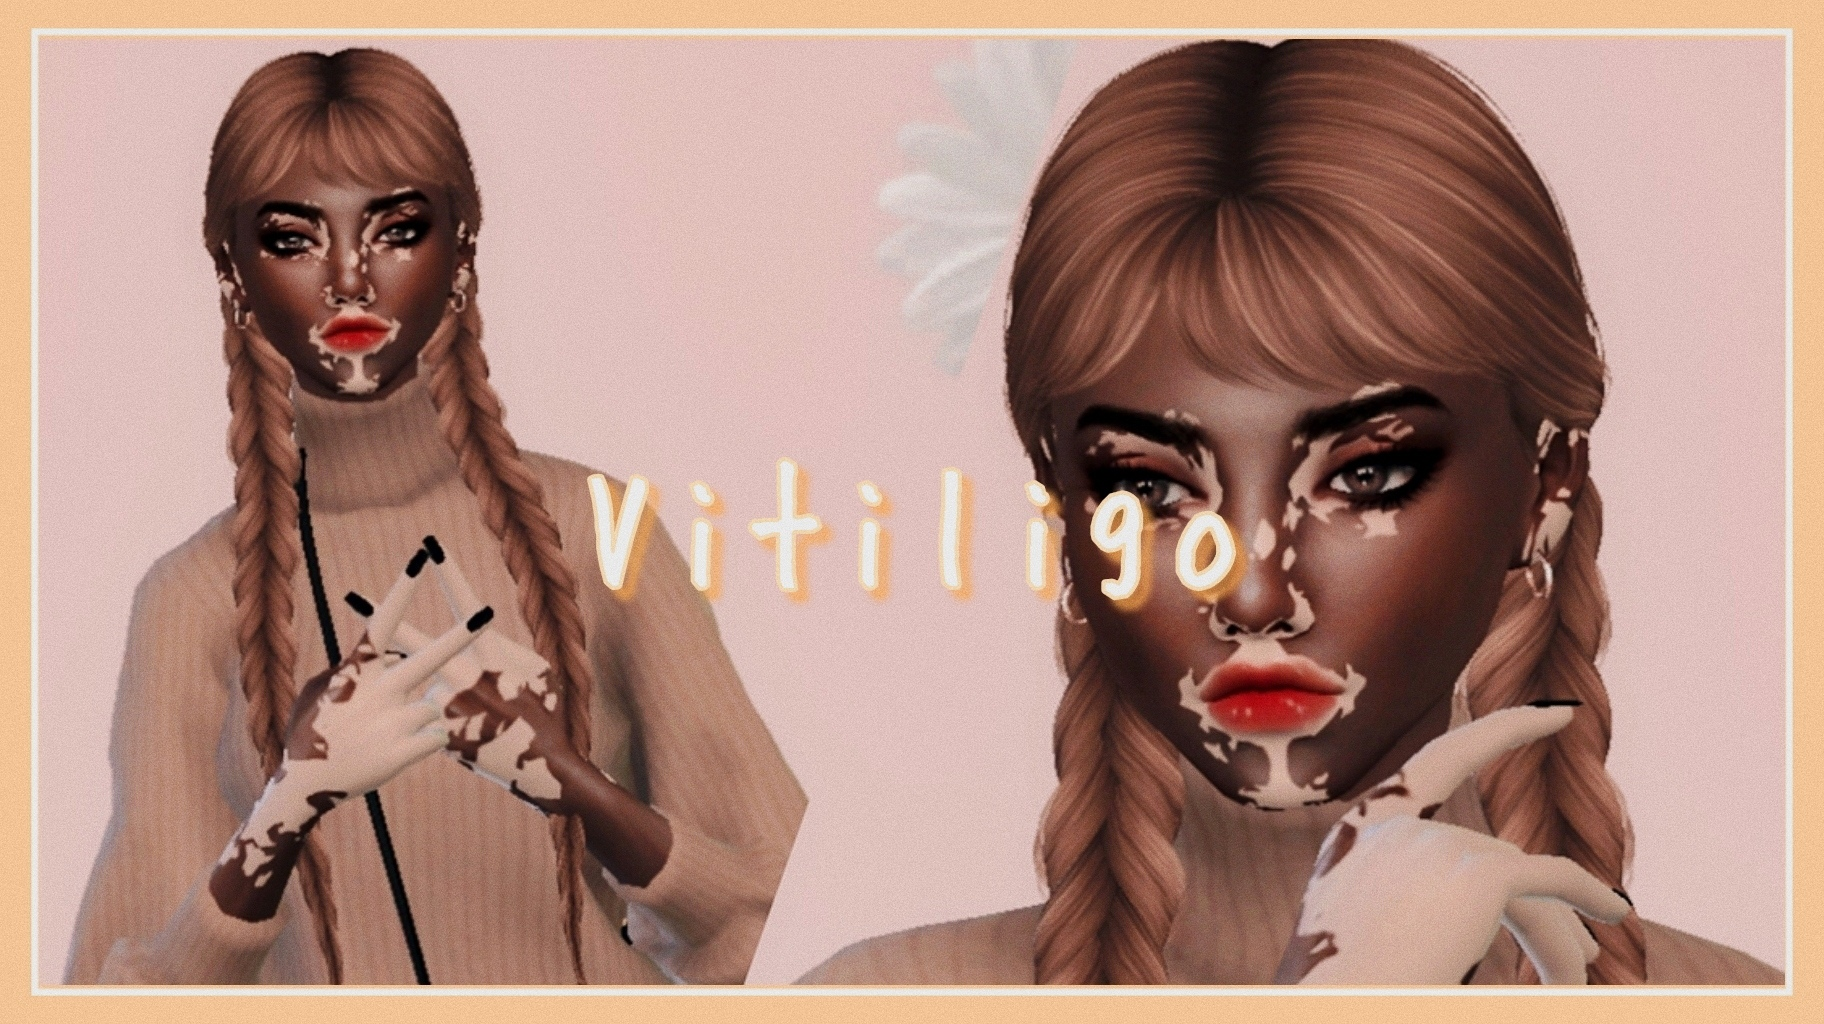 The Sims 4 Vitiligo Female The Sims 4 Catalog